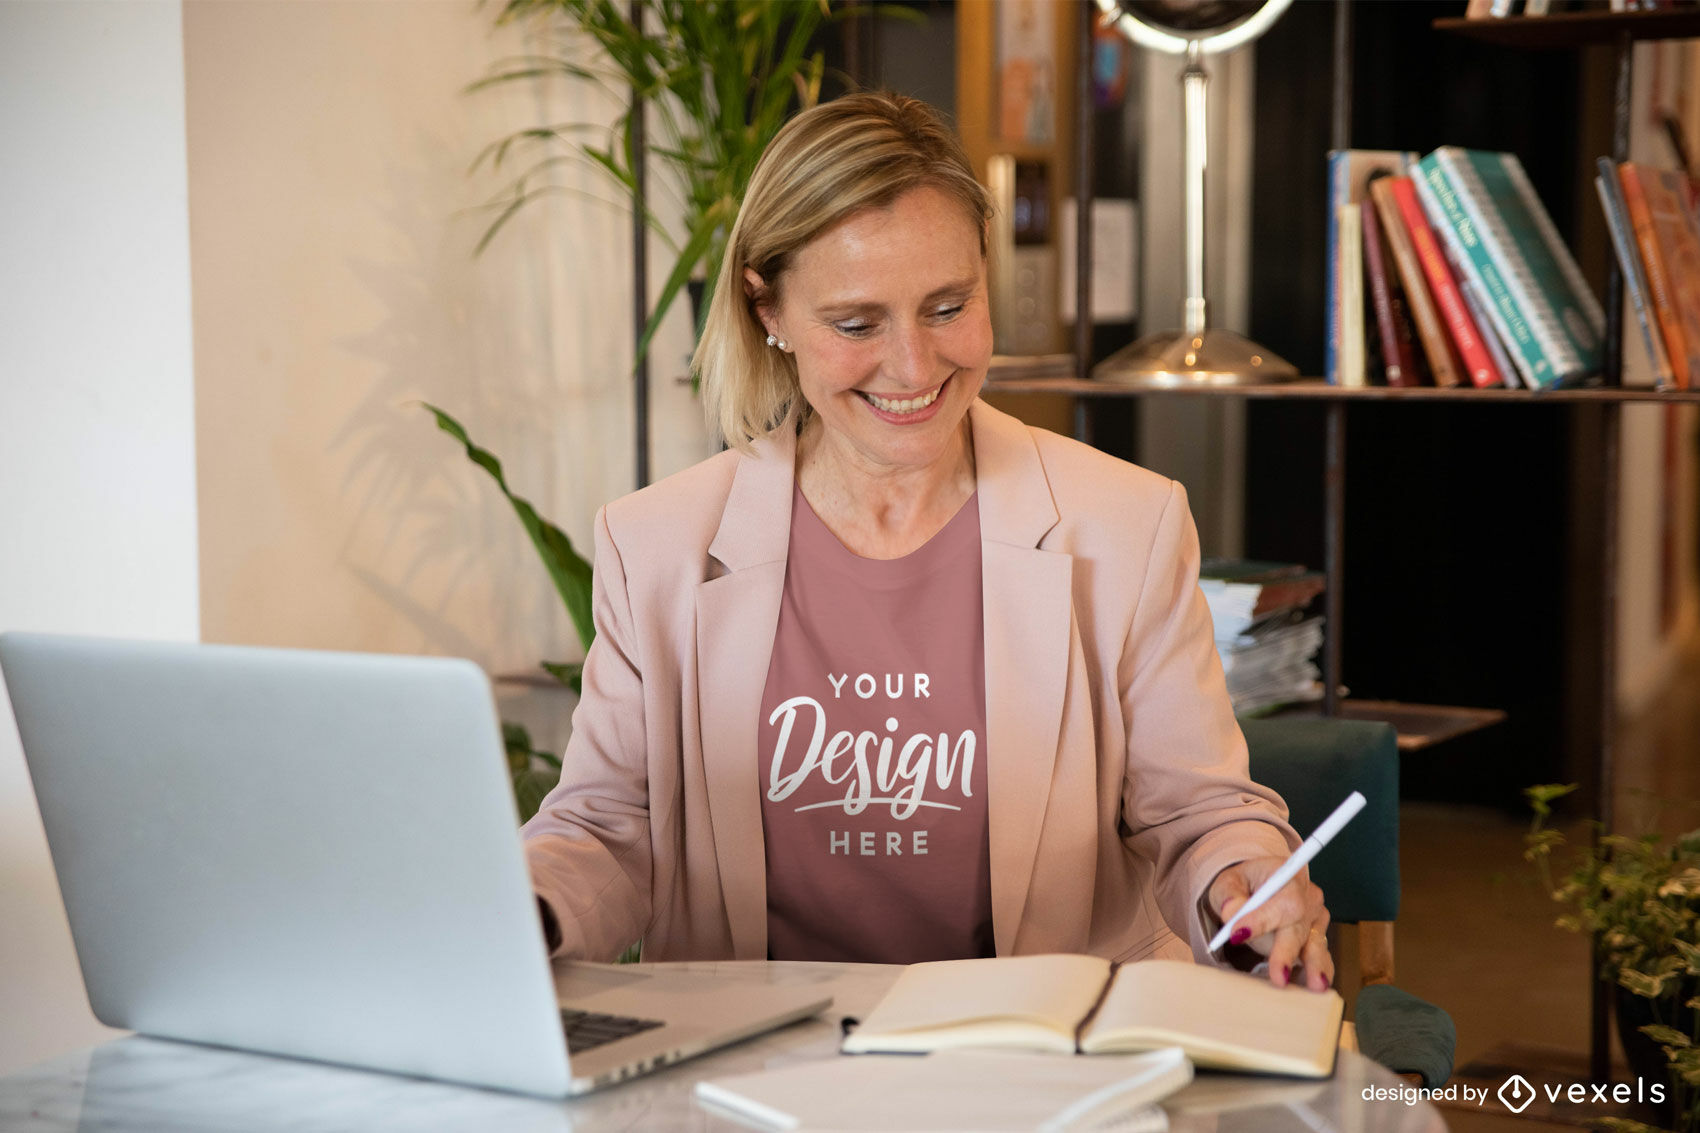 Woman in office in pink t-shirt mockup